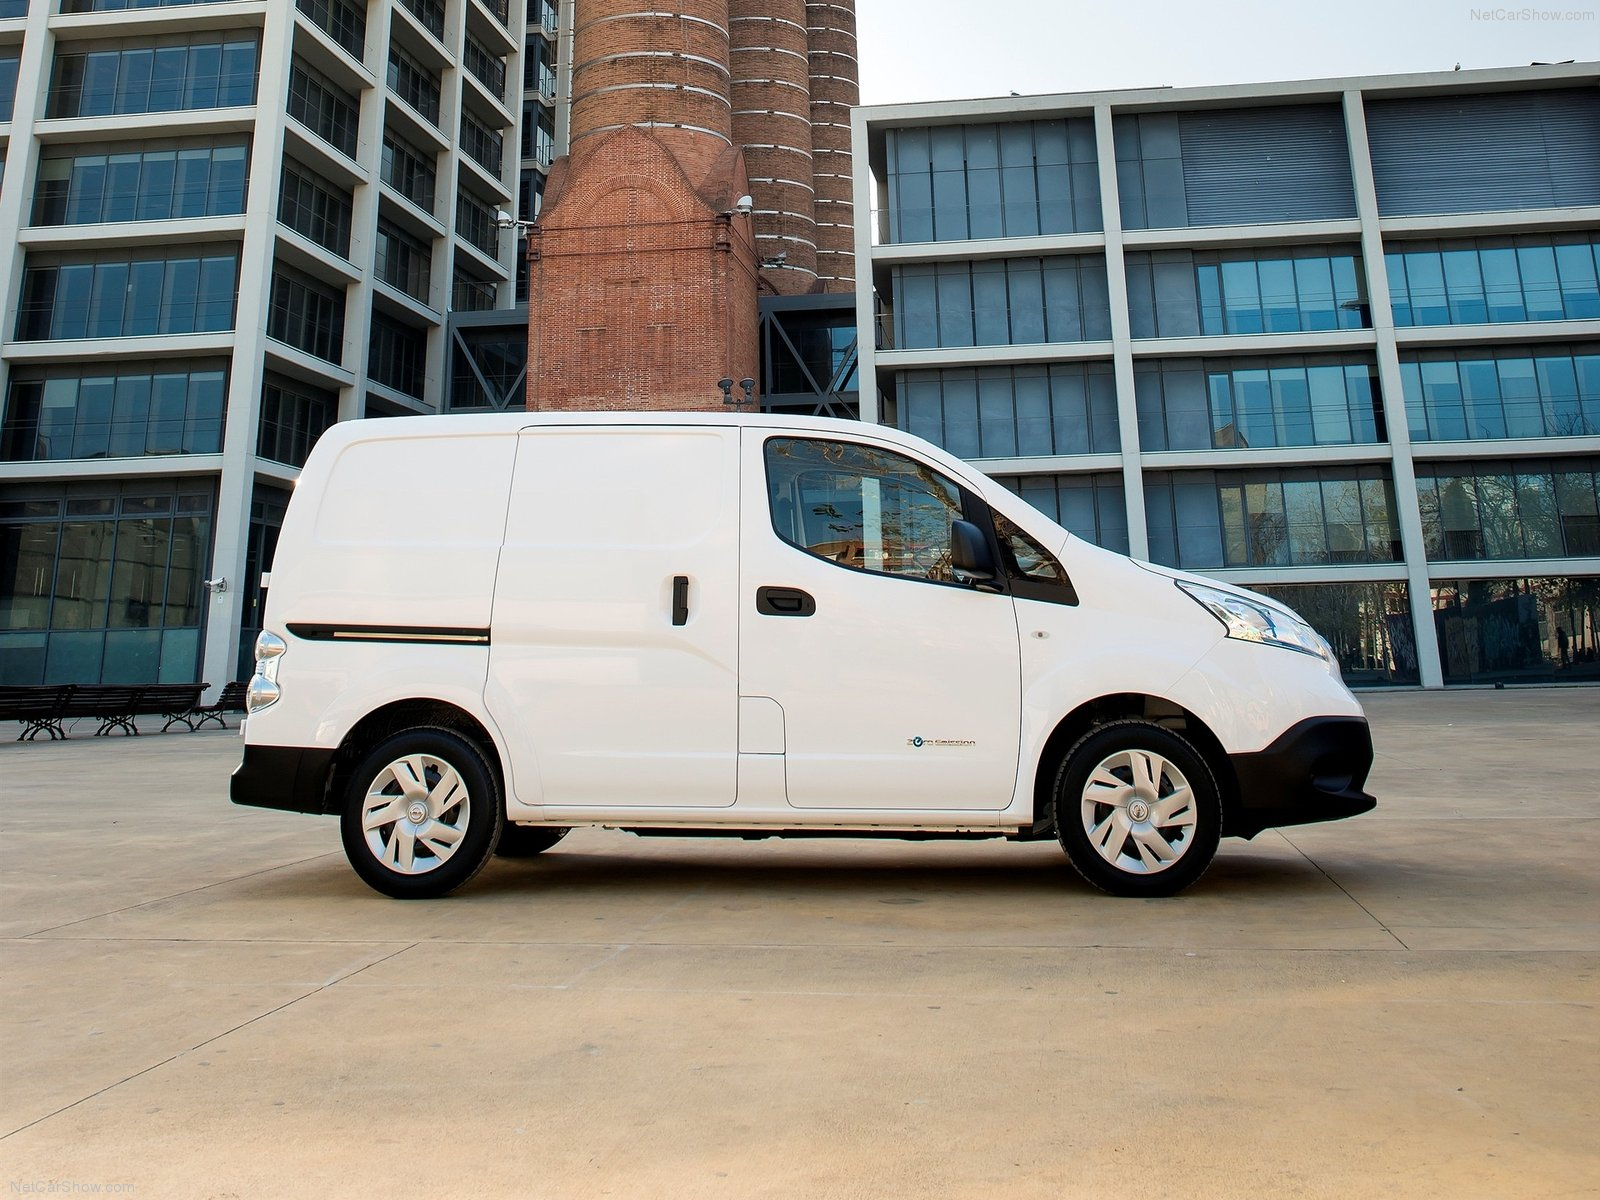 Nissan e-NV200 photo 110761